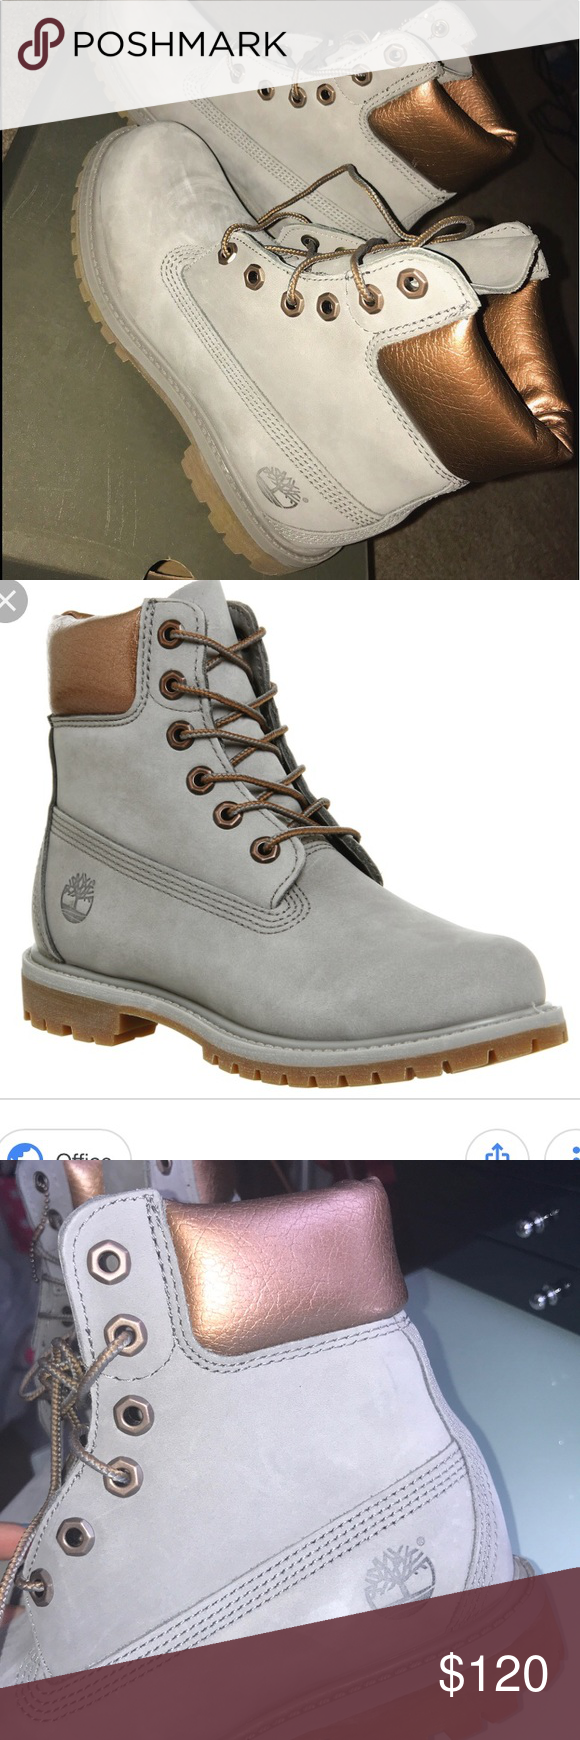 72cfa8db06f Timberland rose gold and grey boots women s size 6 Super cute and worn only  once with scuffing as shown! Comes with original box although the box is ...